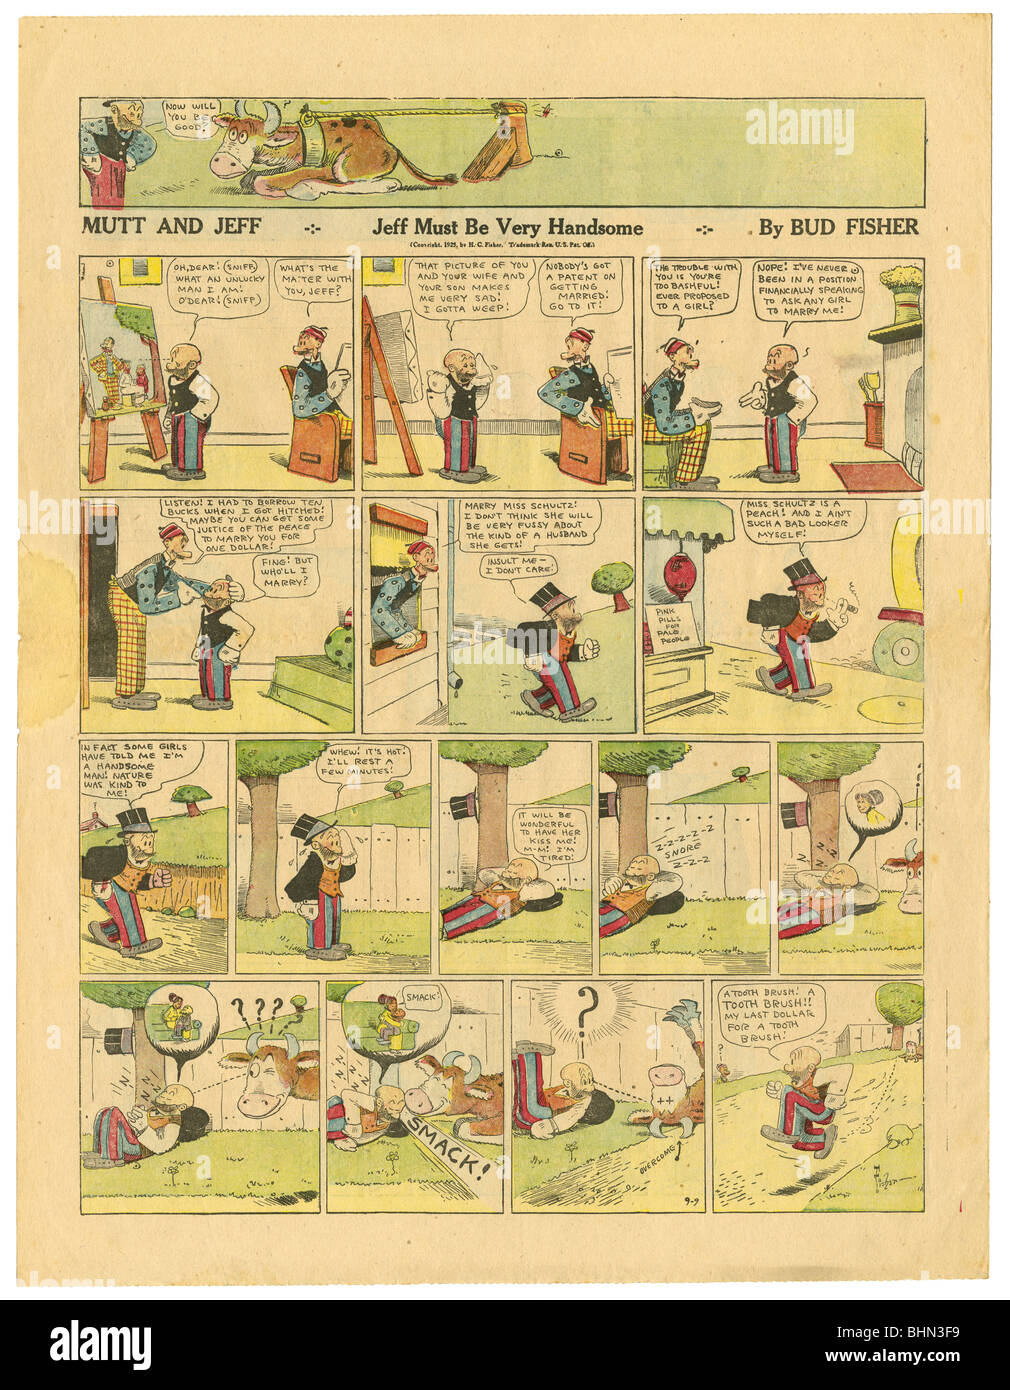 1923 color Sunday newspaper comic page, Mutt and Jeff, by Bud Fisher. - Stock Image